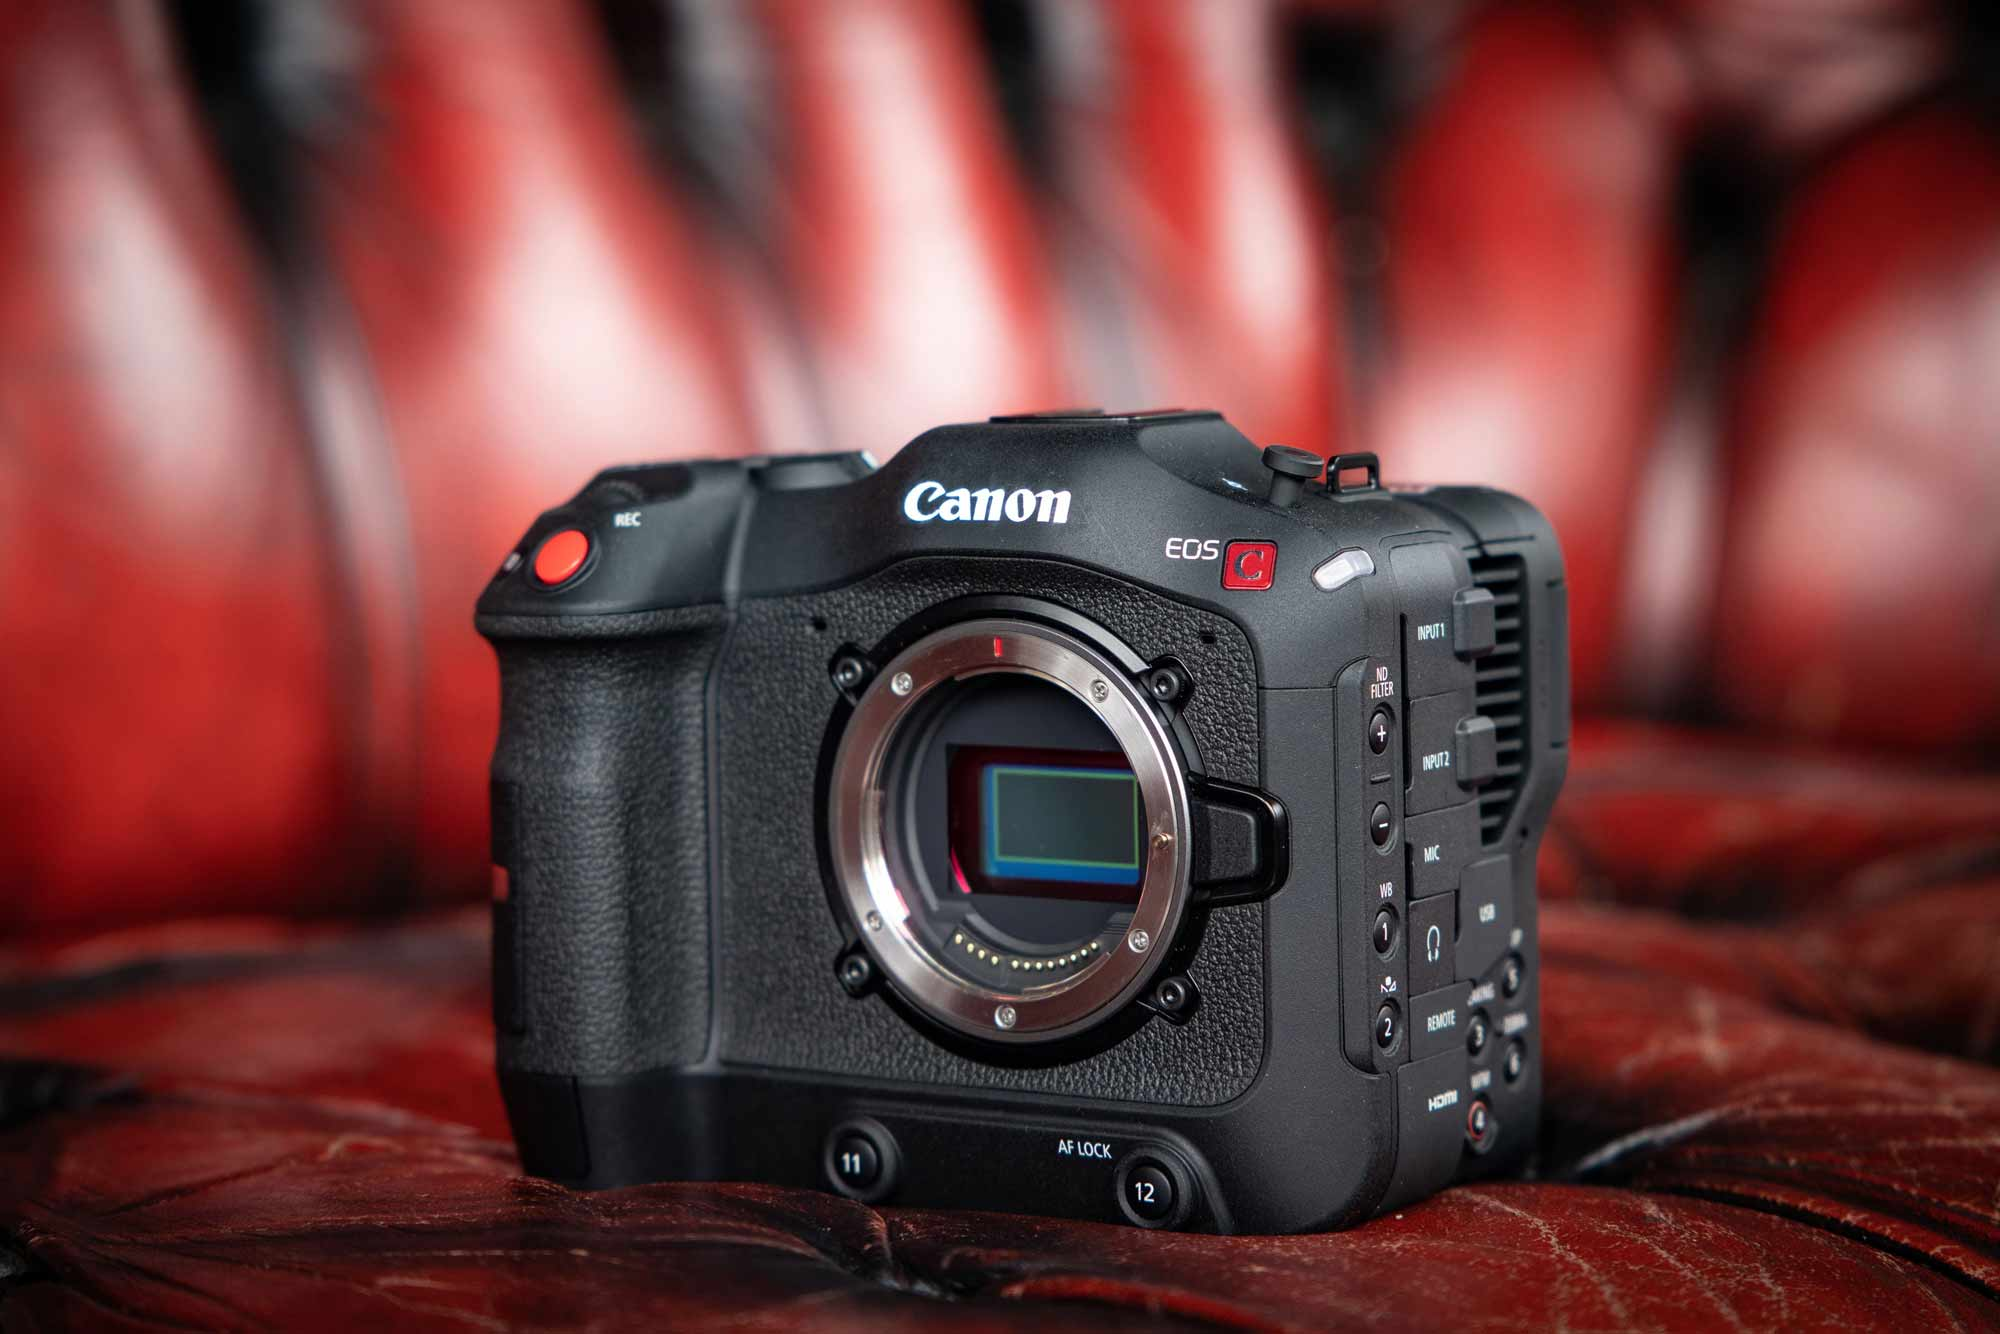 Canon C70 Camcorder